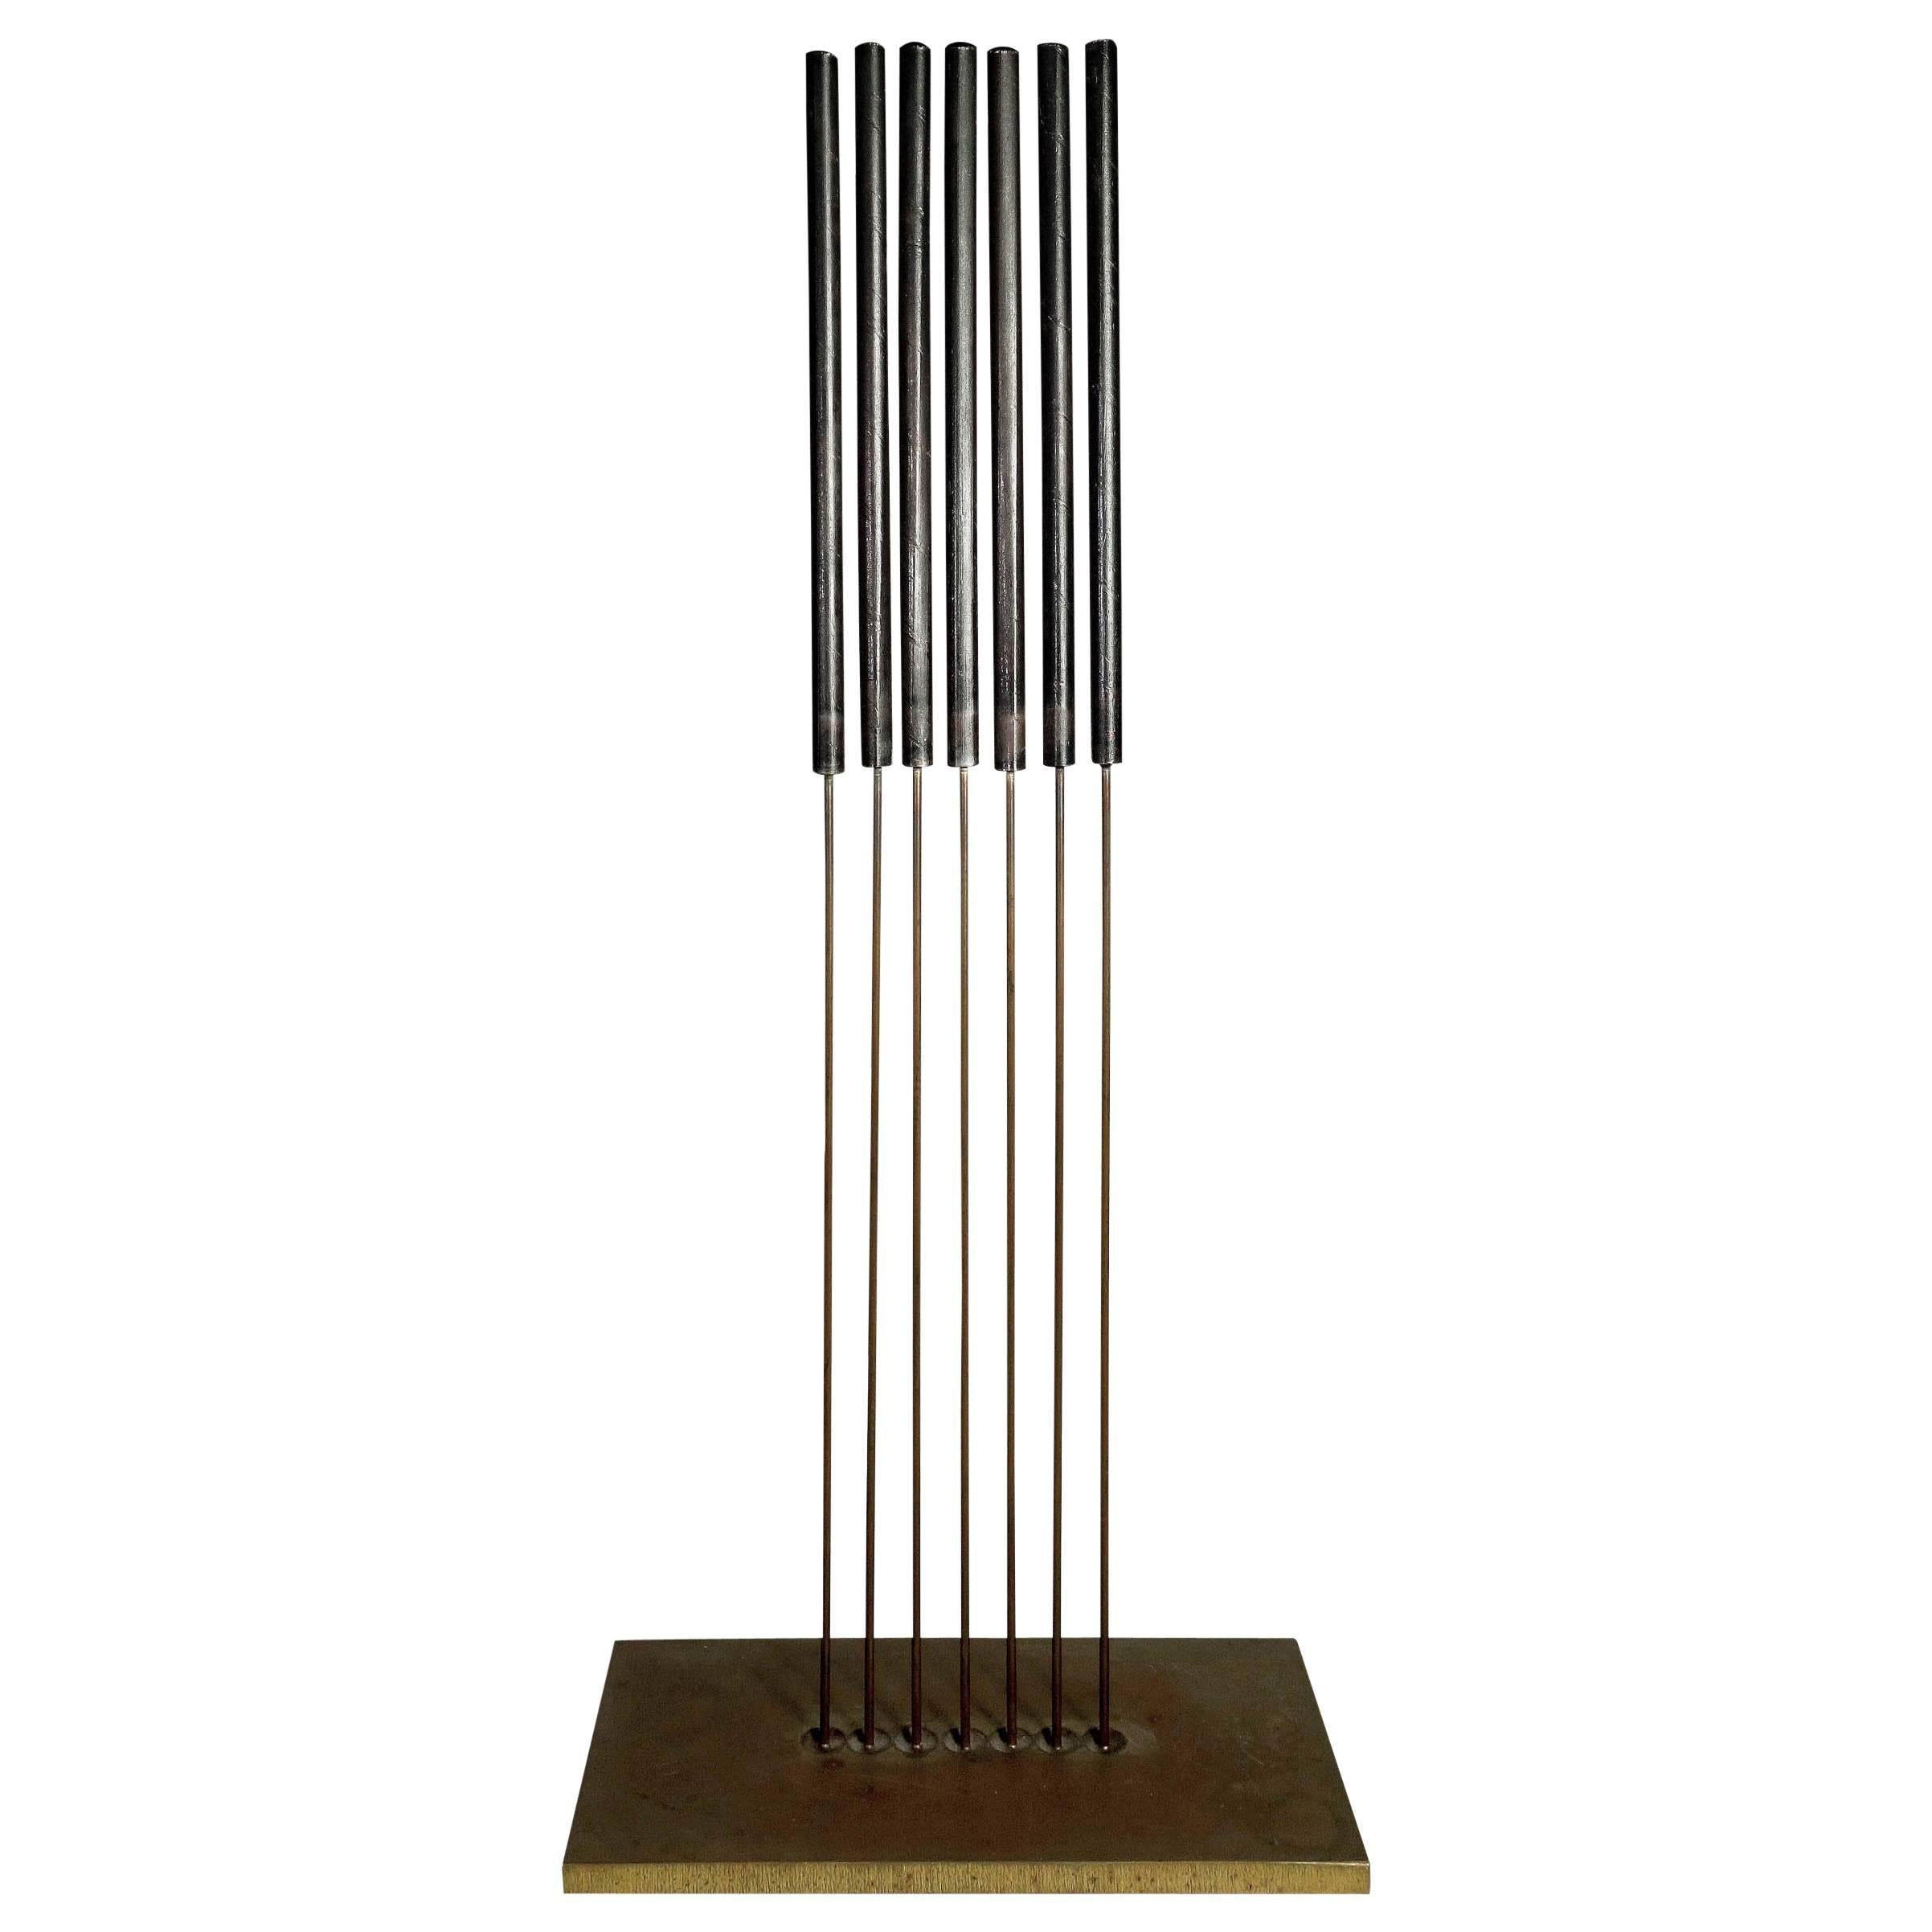 Midcentury Harry Bertoia Sonambient Sculpture